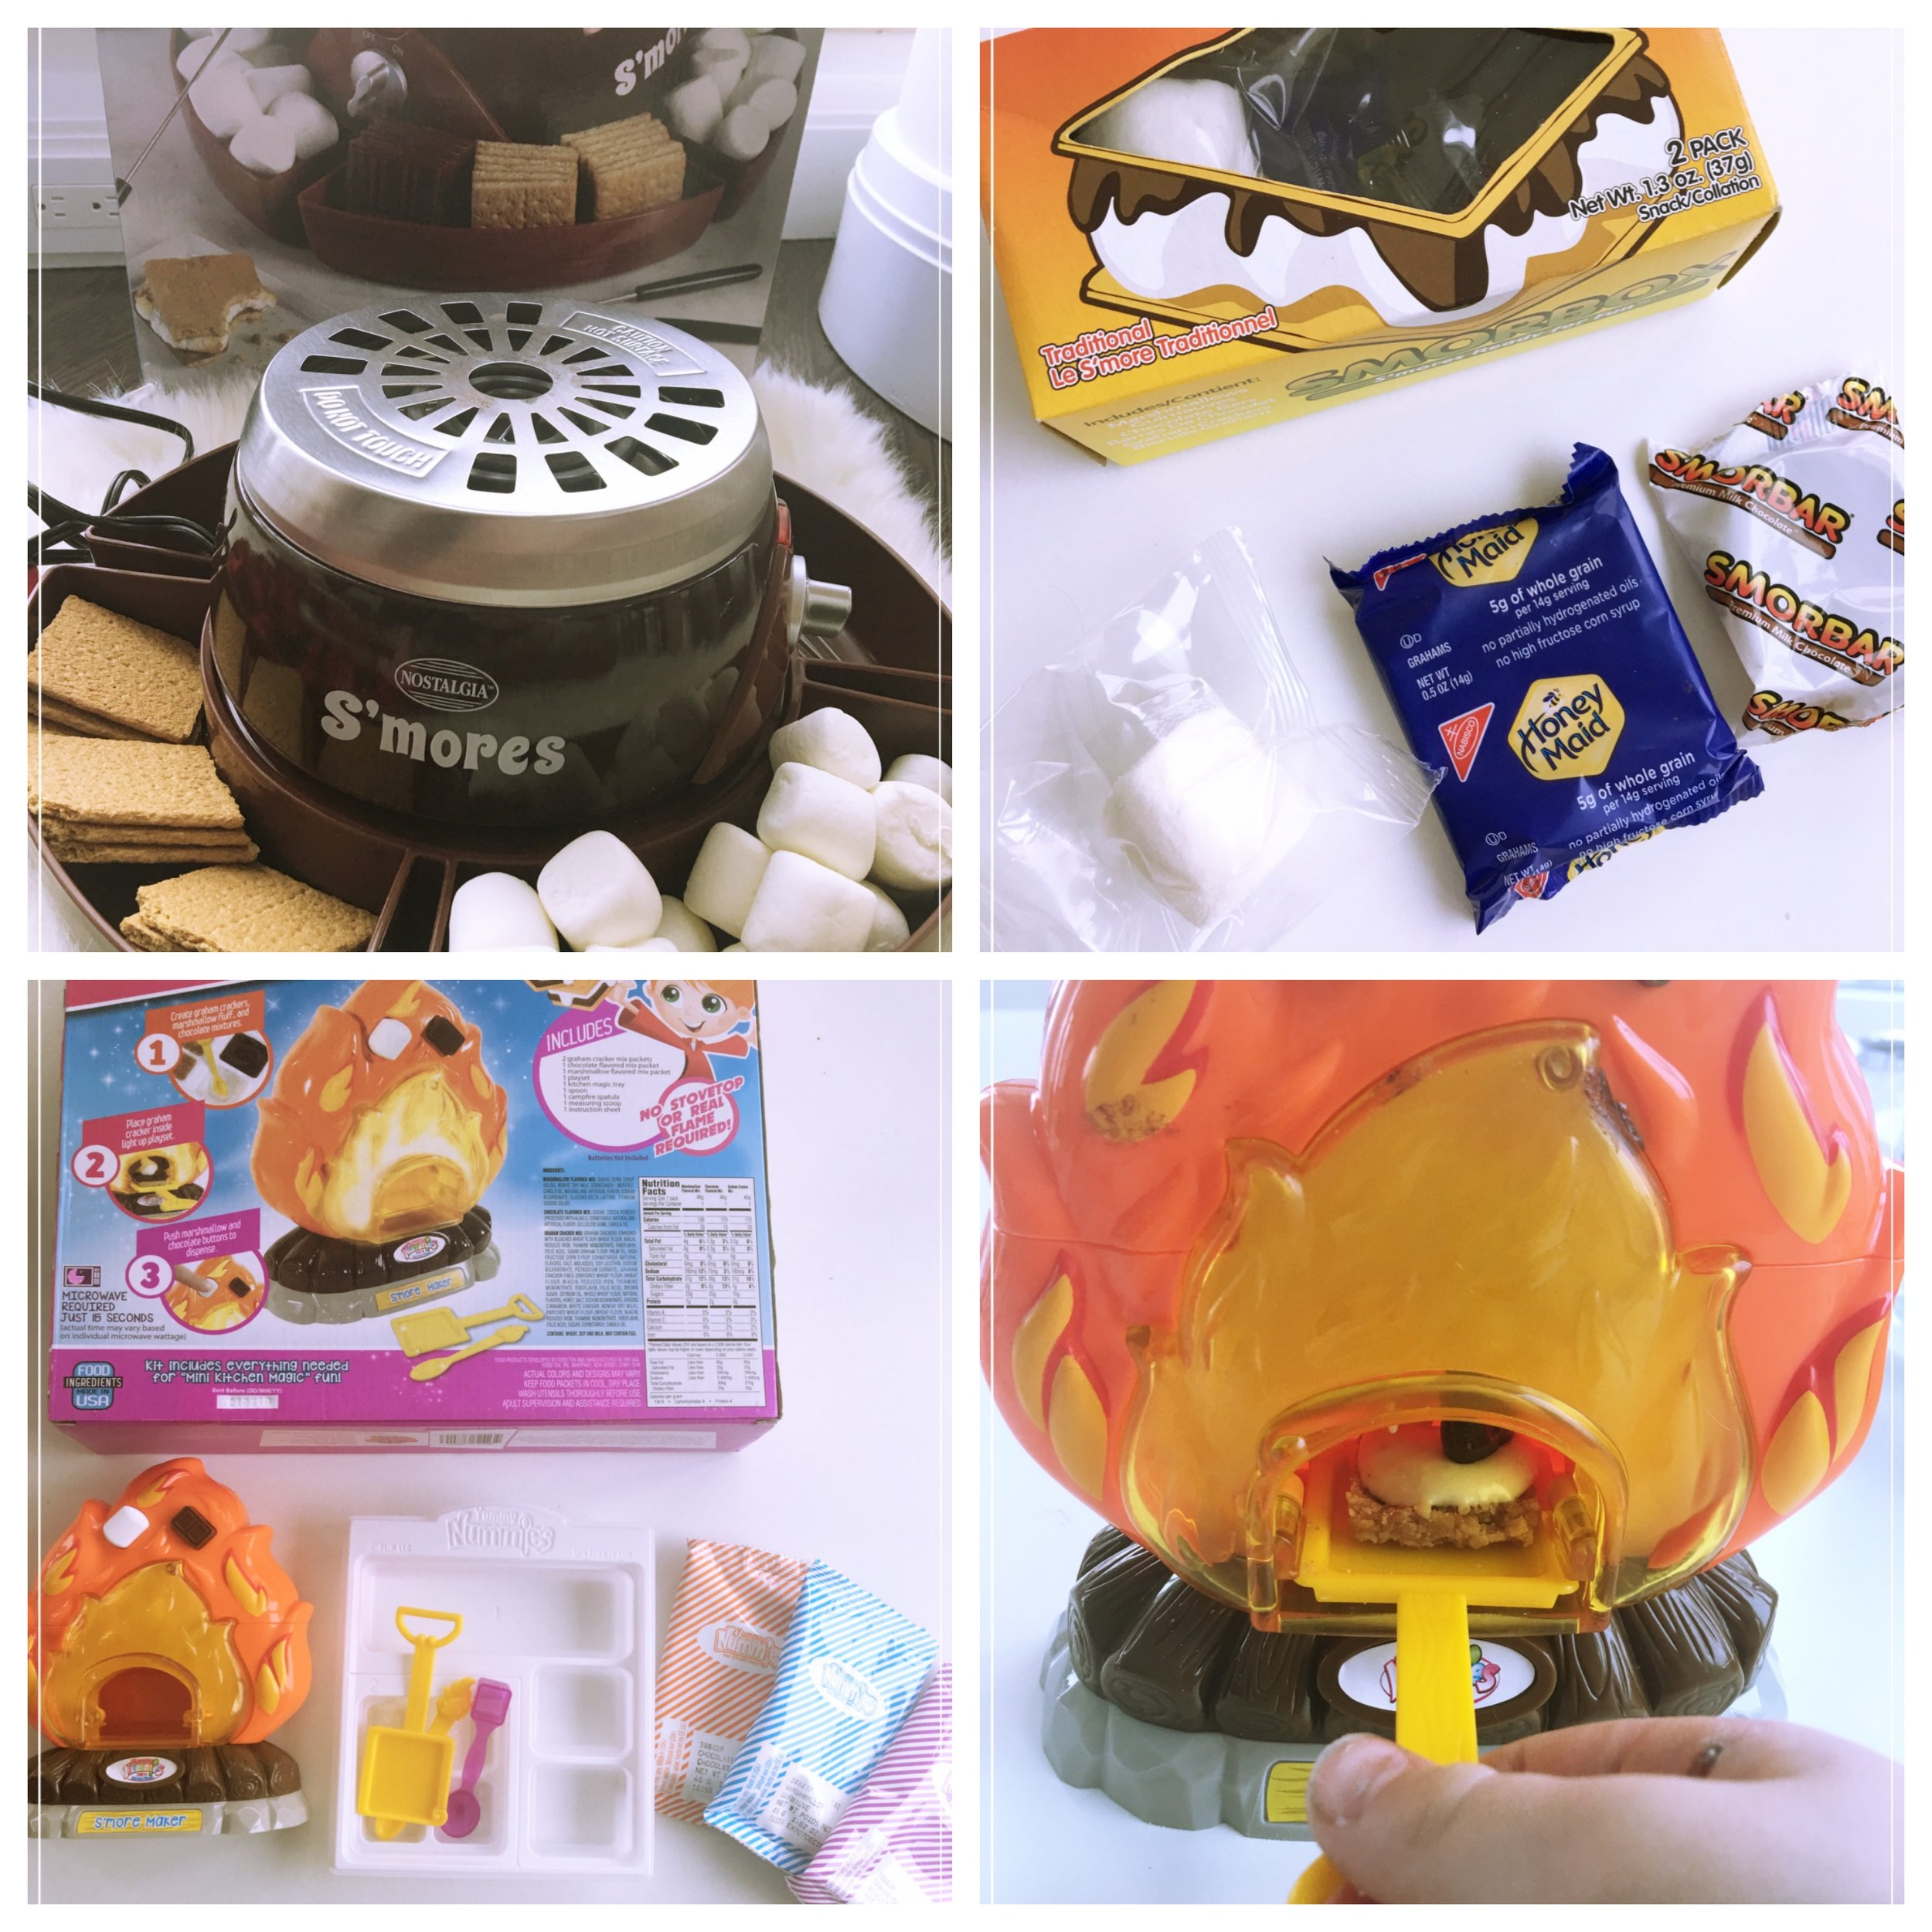 Nostalgic S'more kit,   Yummy Nummie S'more kit ,  SmorBox  pre-packaged s'mores set